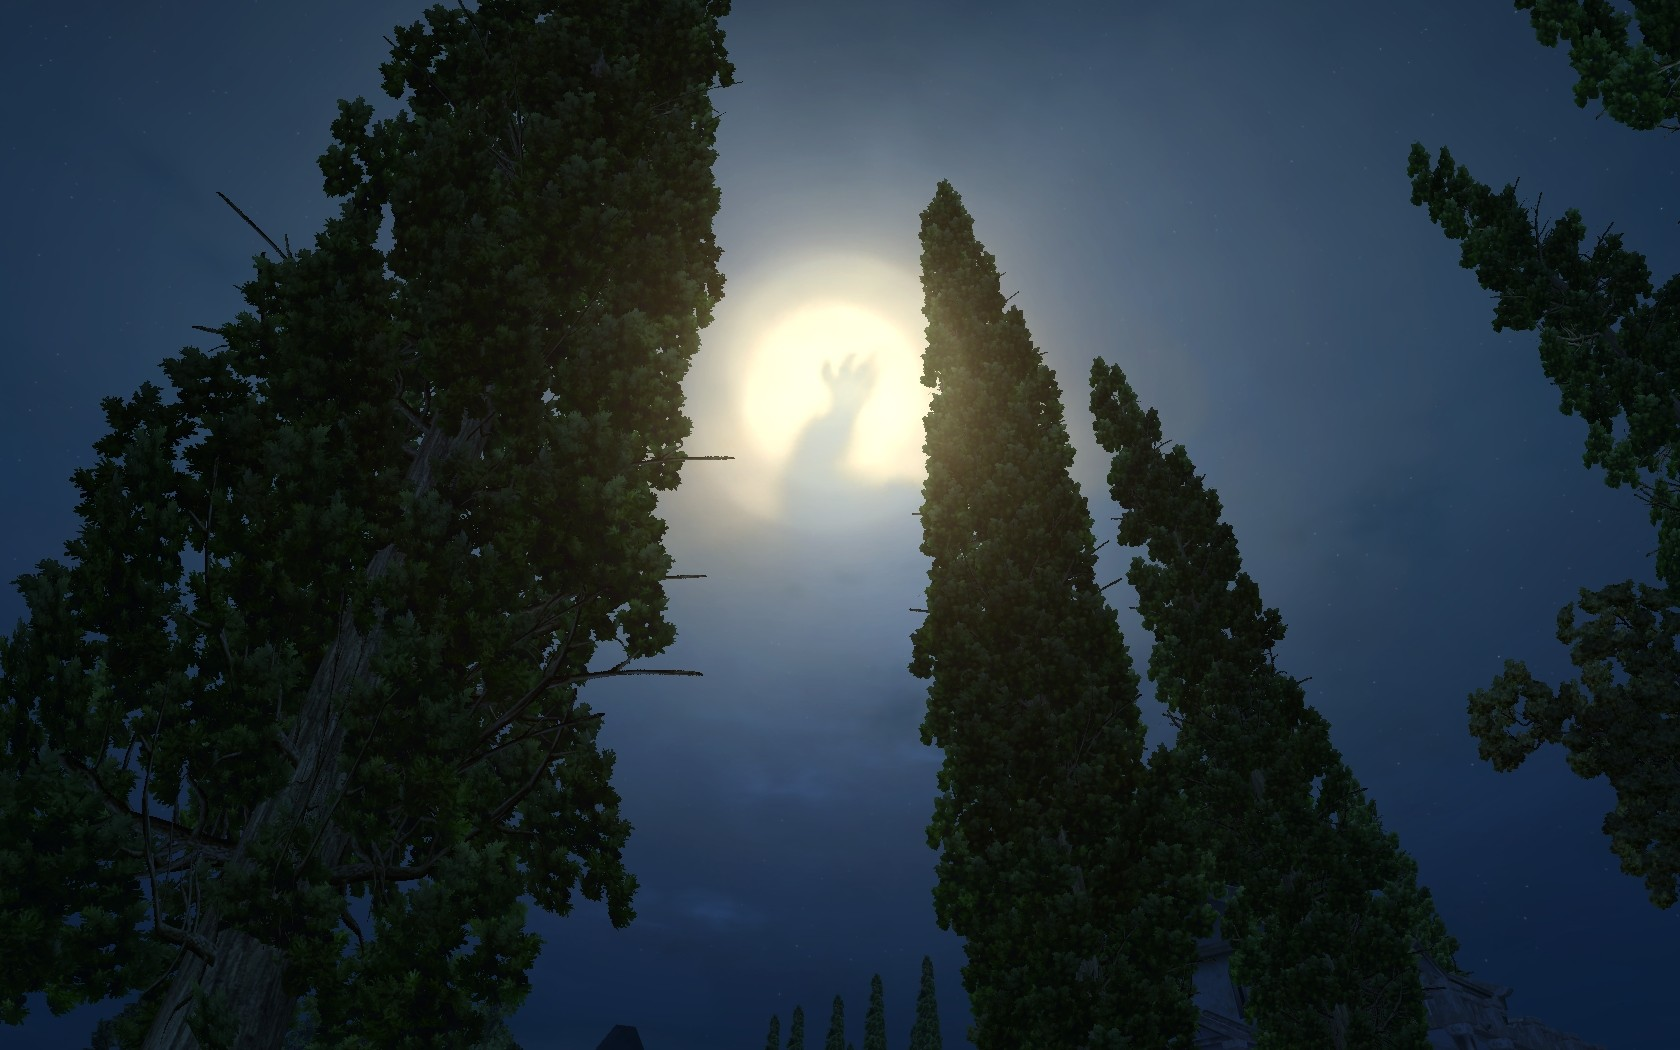 Man in the Moon?